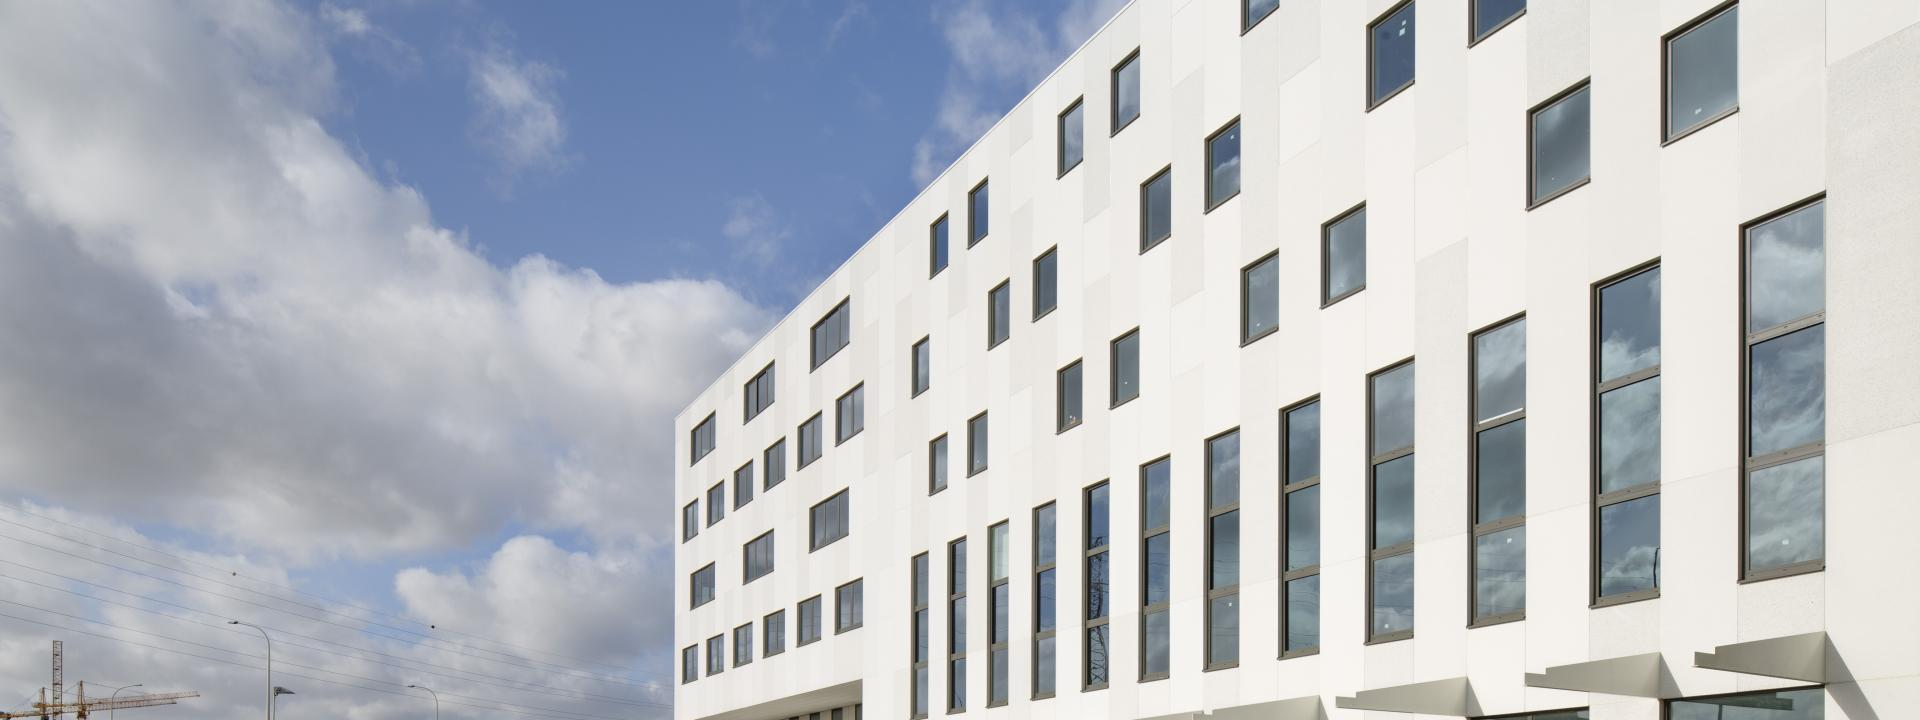 Wit cement - Accent Business Park - Architect: BURO II en ARCHI+I - Roeselare.